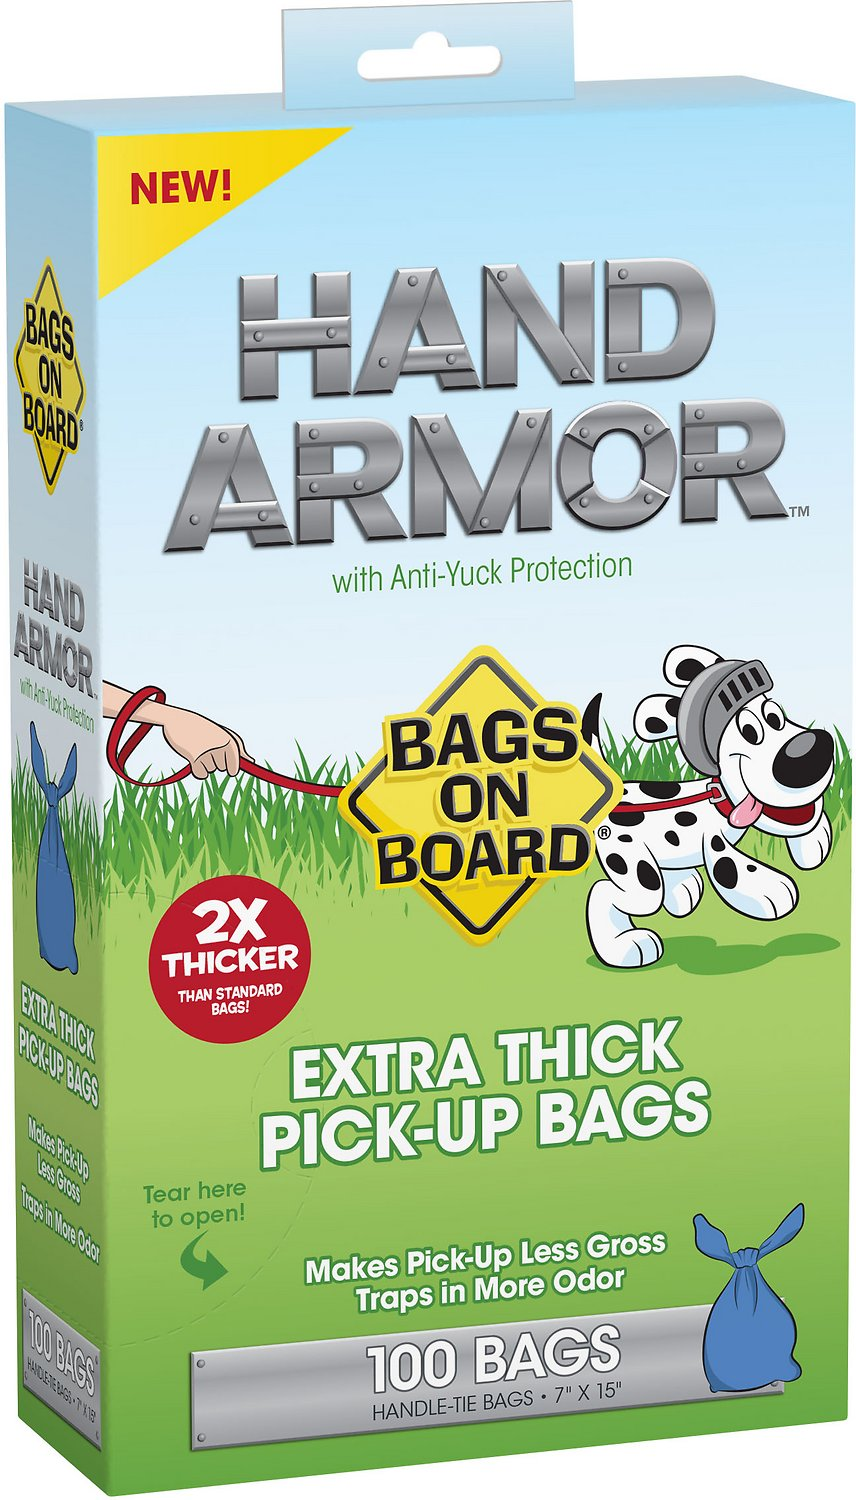 Bags on Board Hand Armor Extra Thick Pick-Up Bags, 100 count Image